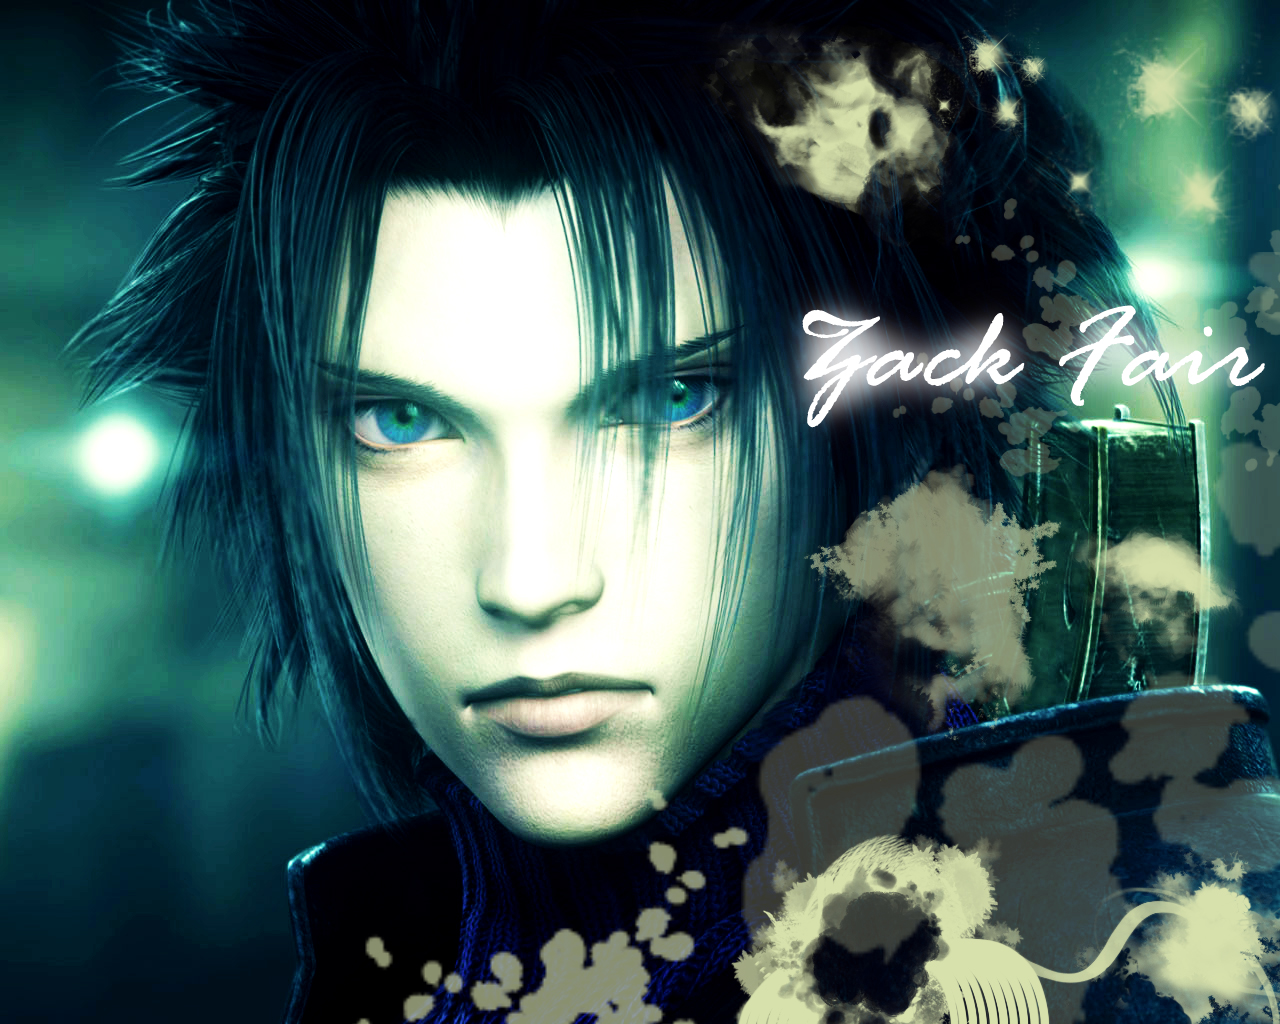 Zack Fair wallpaper  Desktop Nexus Wallpapers